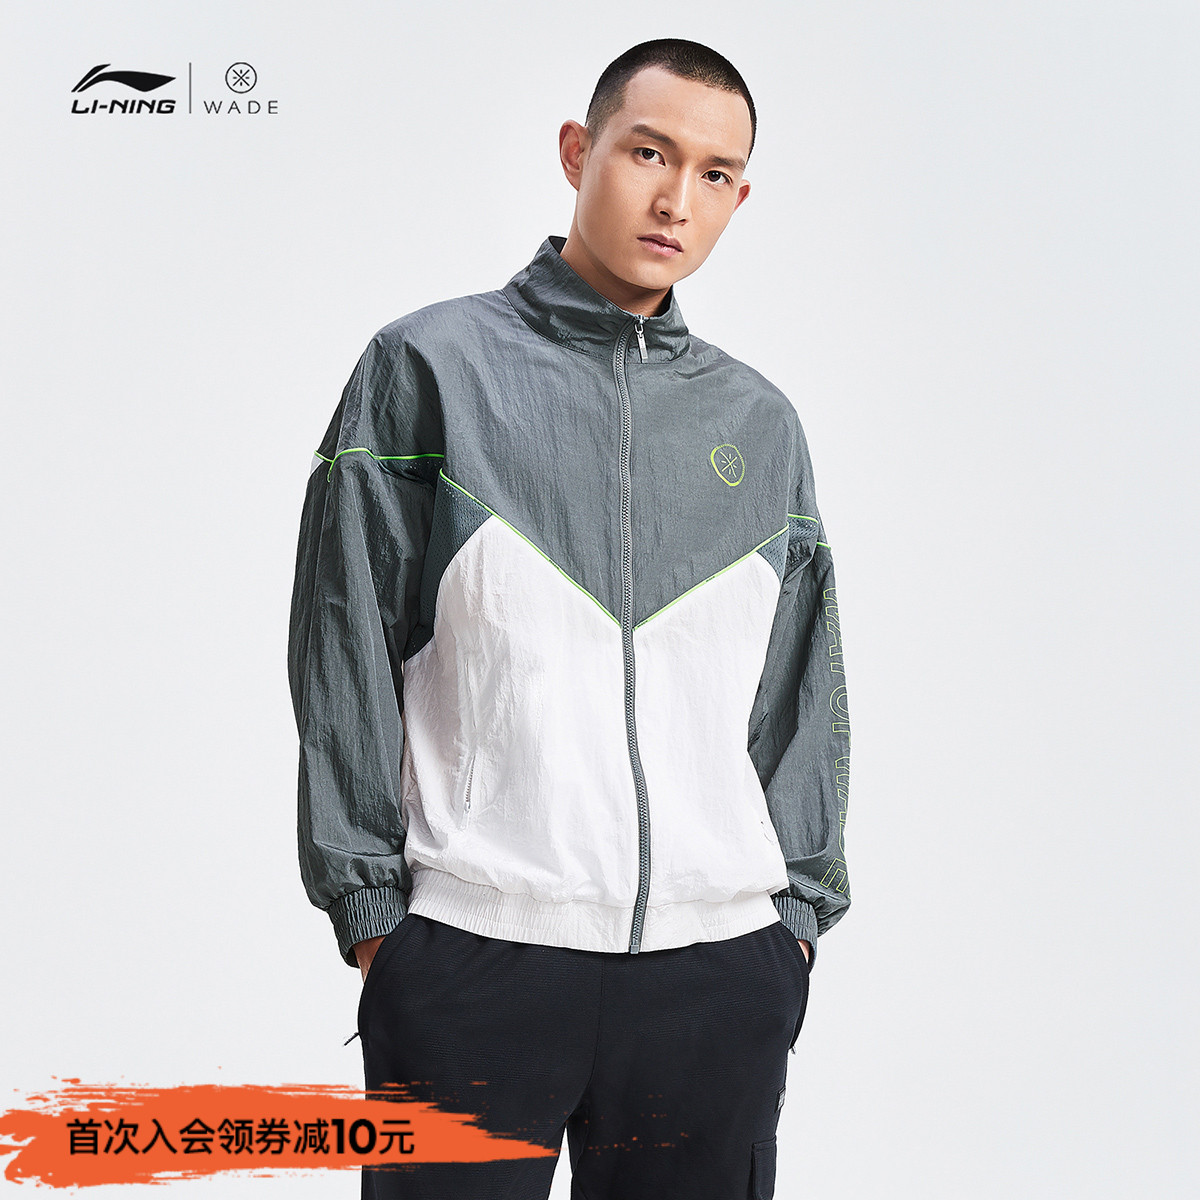 Li Ning Jacket Men's 2021 Spring New Wade Series Cartoon Long Sleeve Leading Loose Men's Sportswear